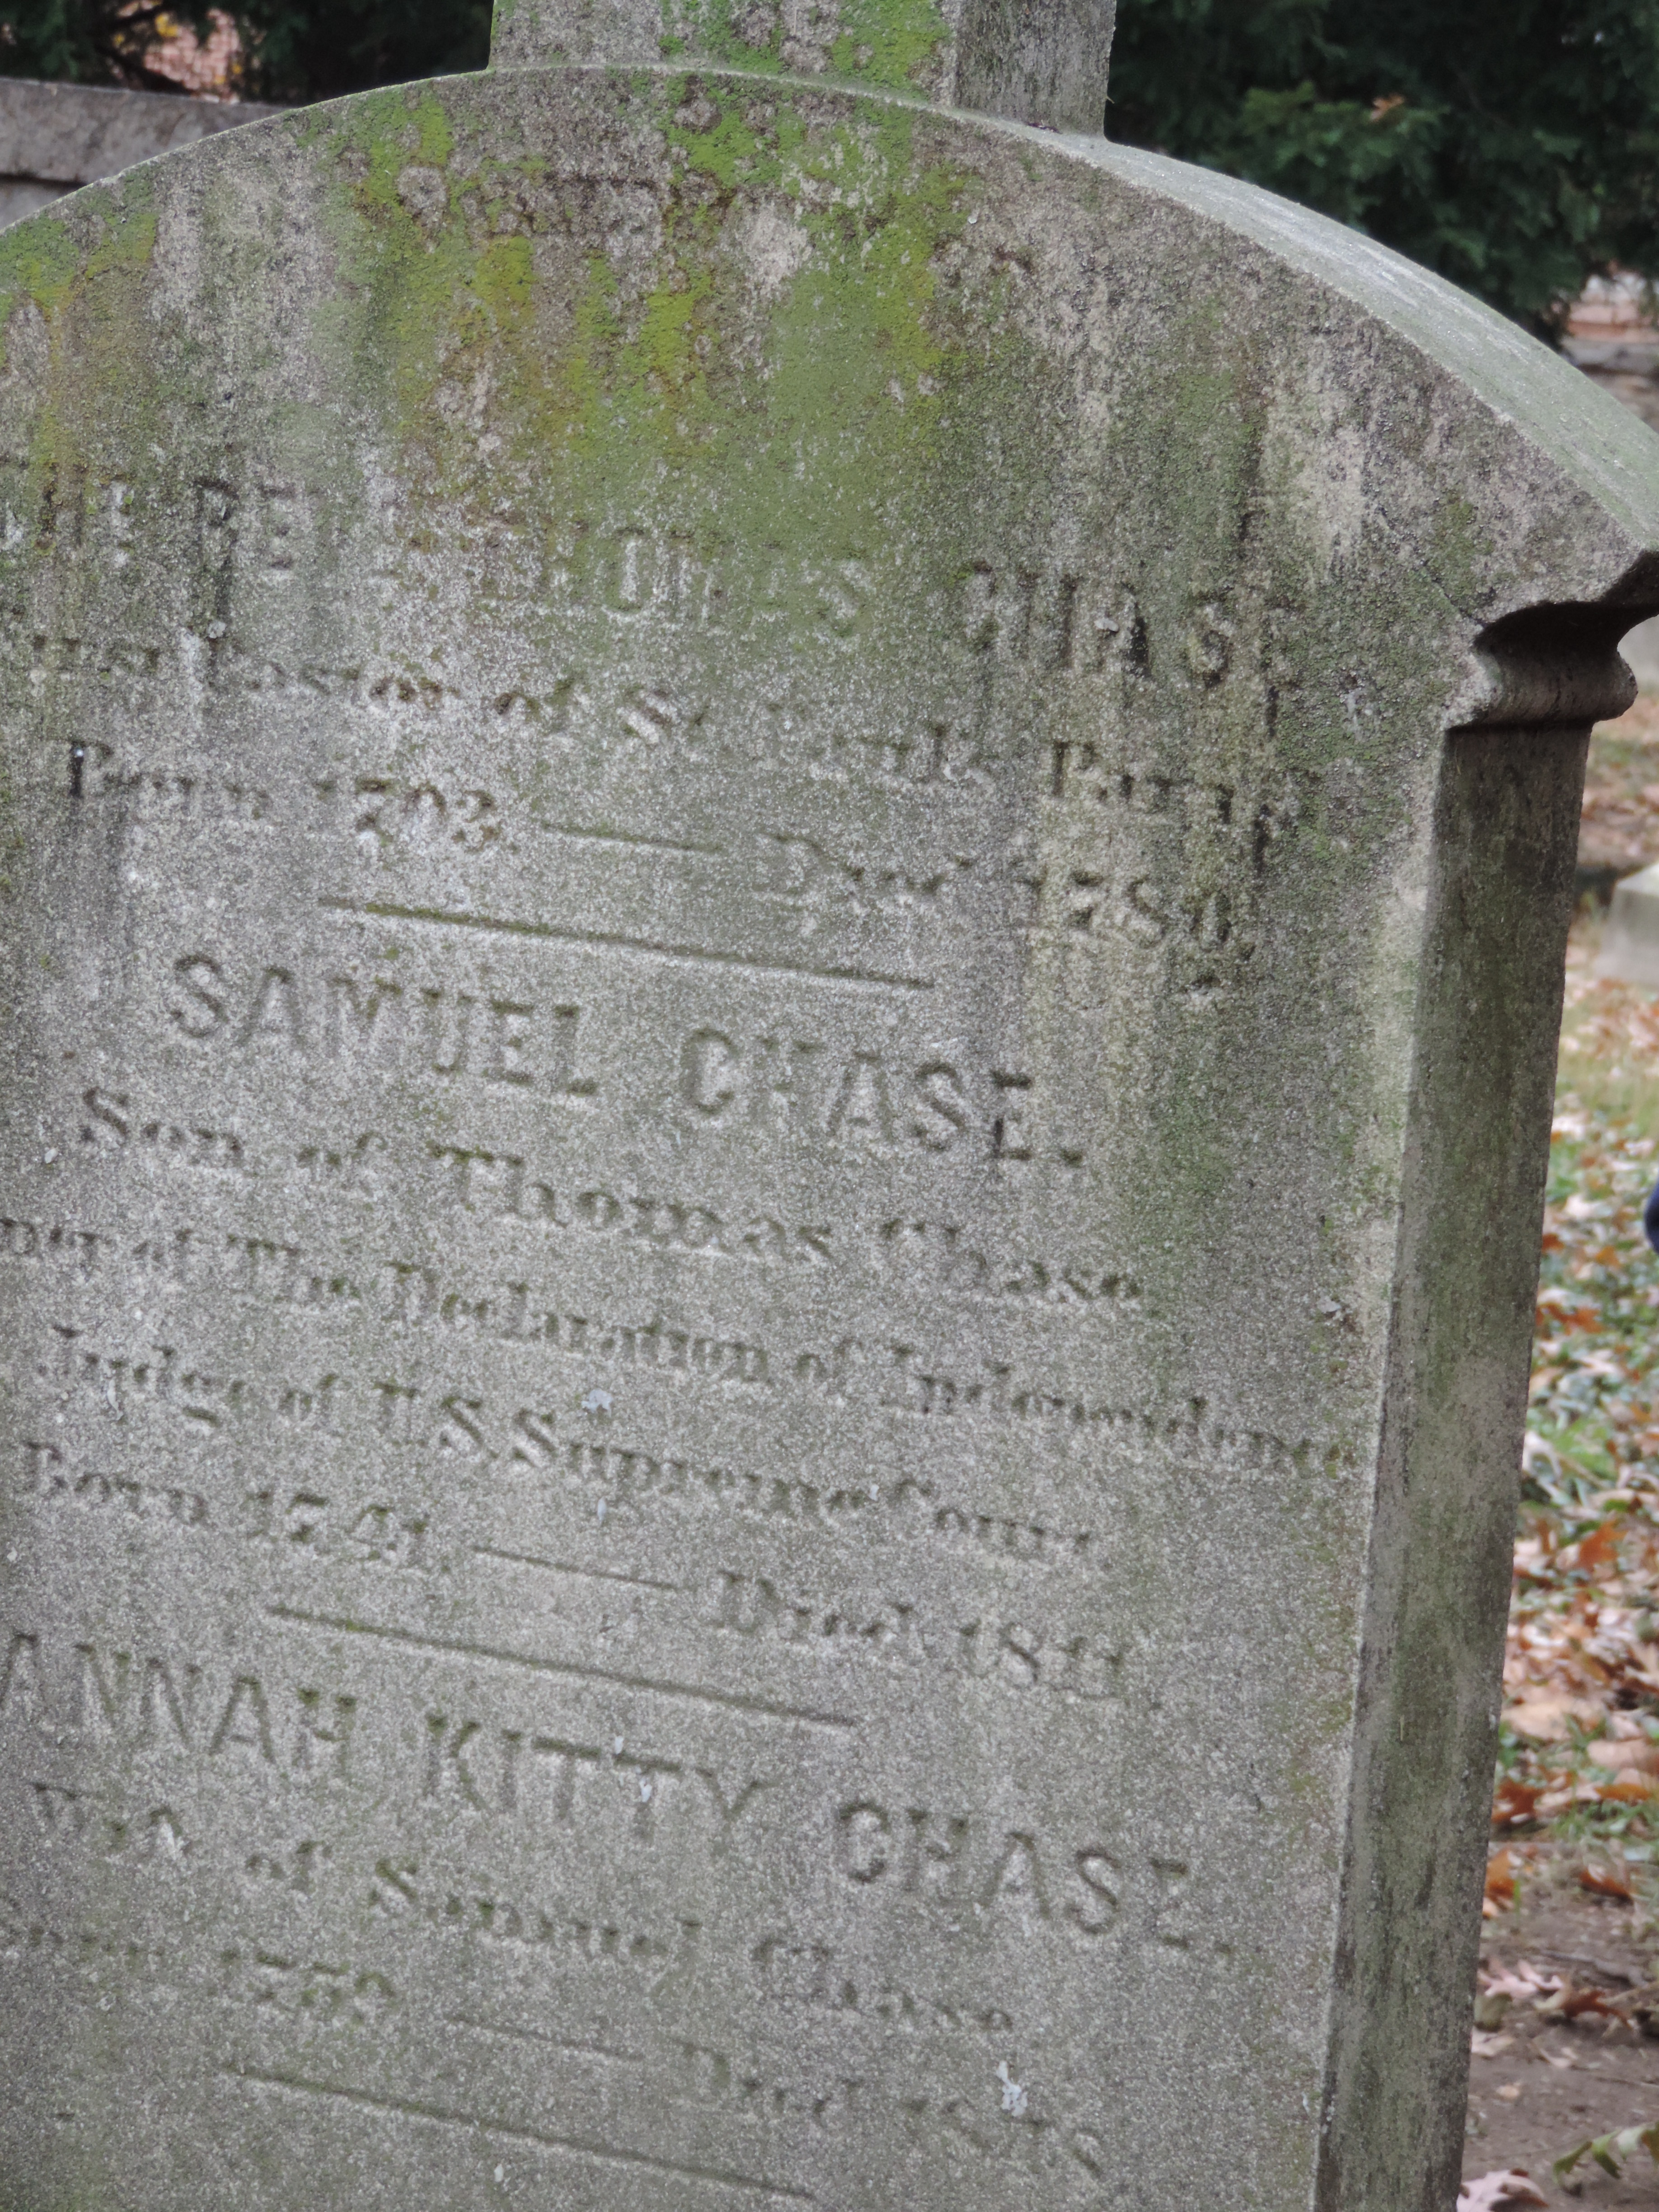 The grave of Samuel Chase, signer of the Declaration of Independence